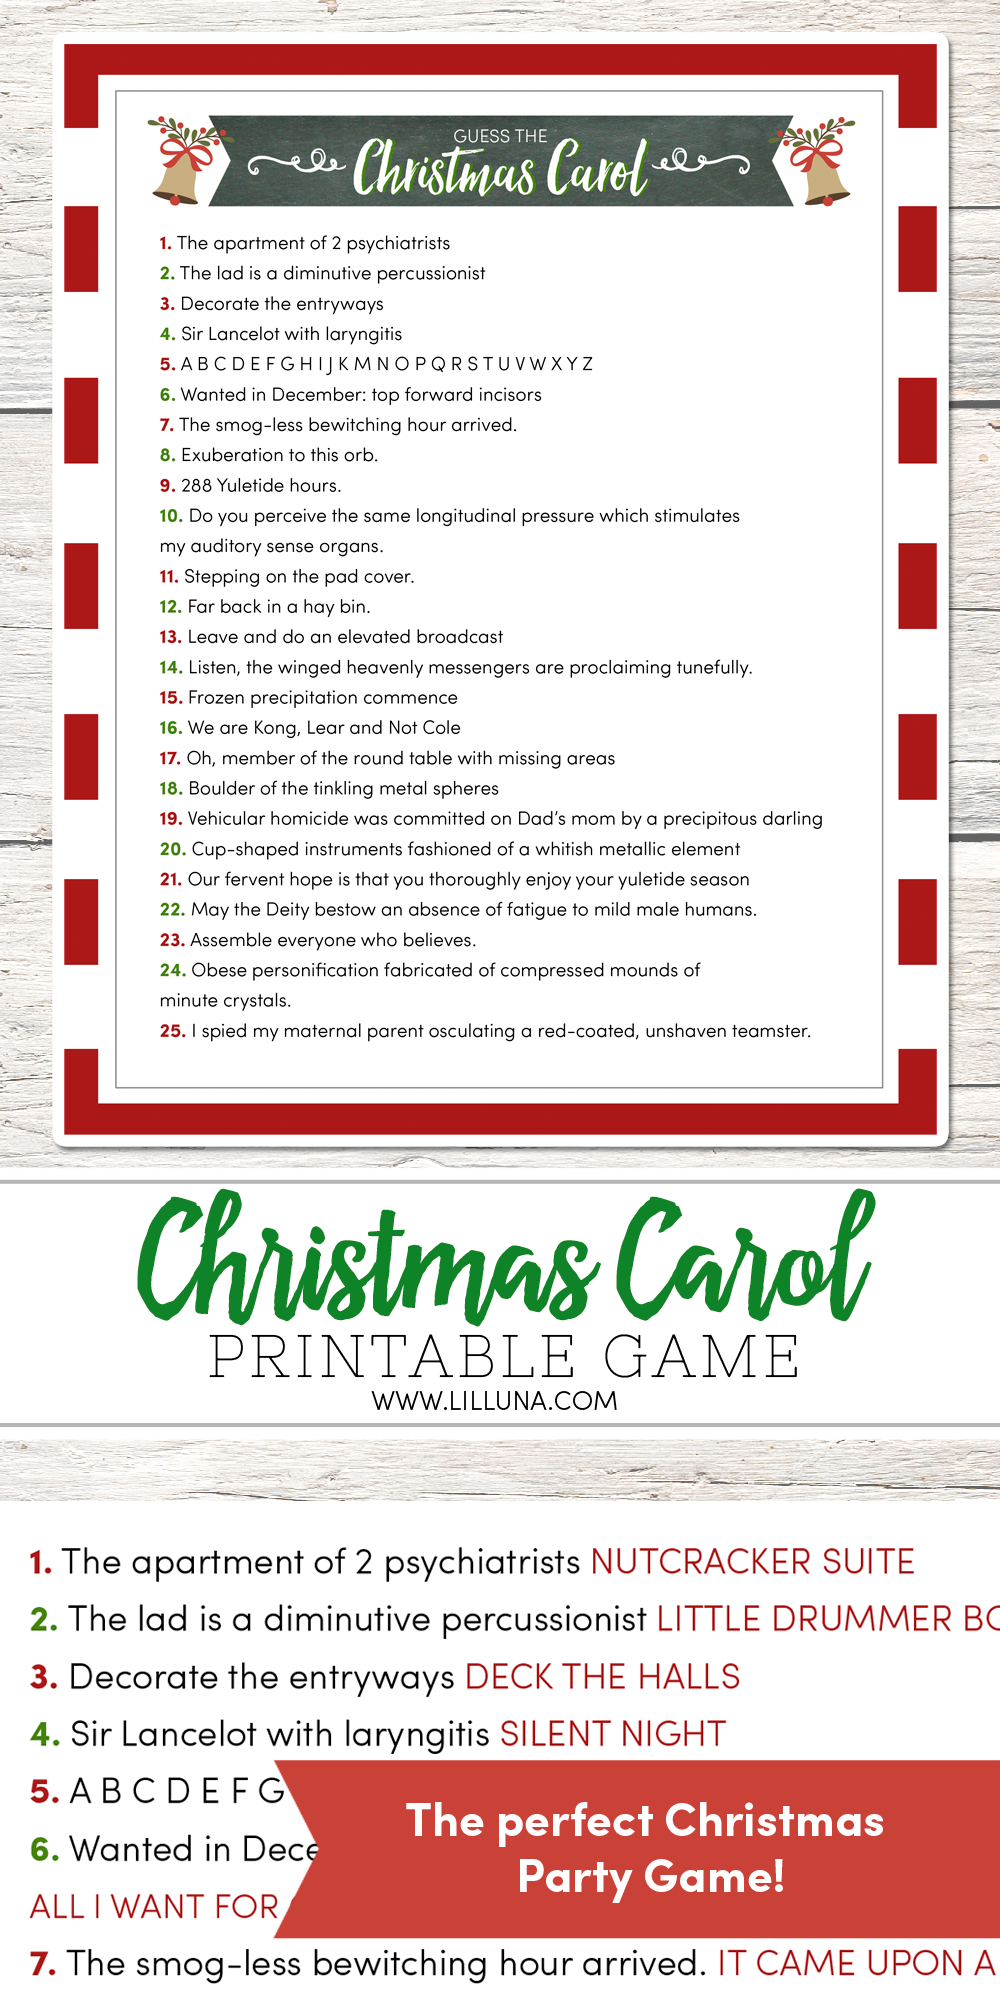 Guess The Christmas Carol Game - Lil' Luna - Free Printable Christmas Song Picture Game